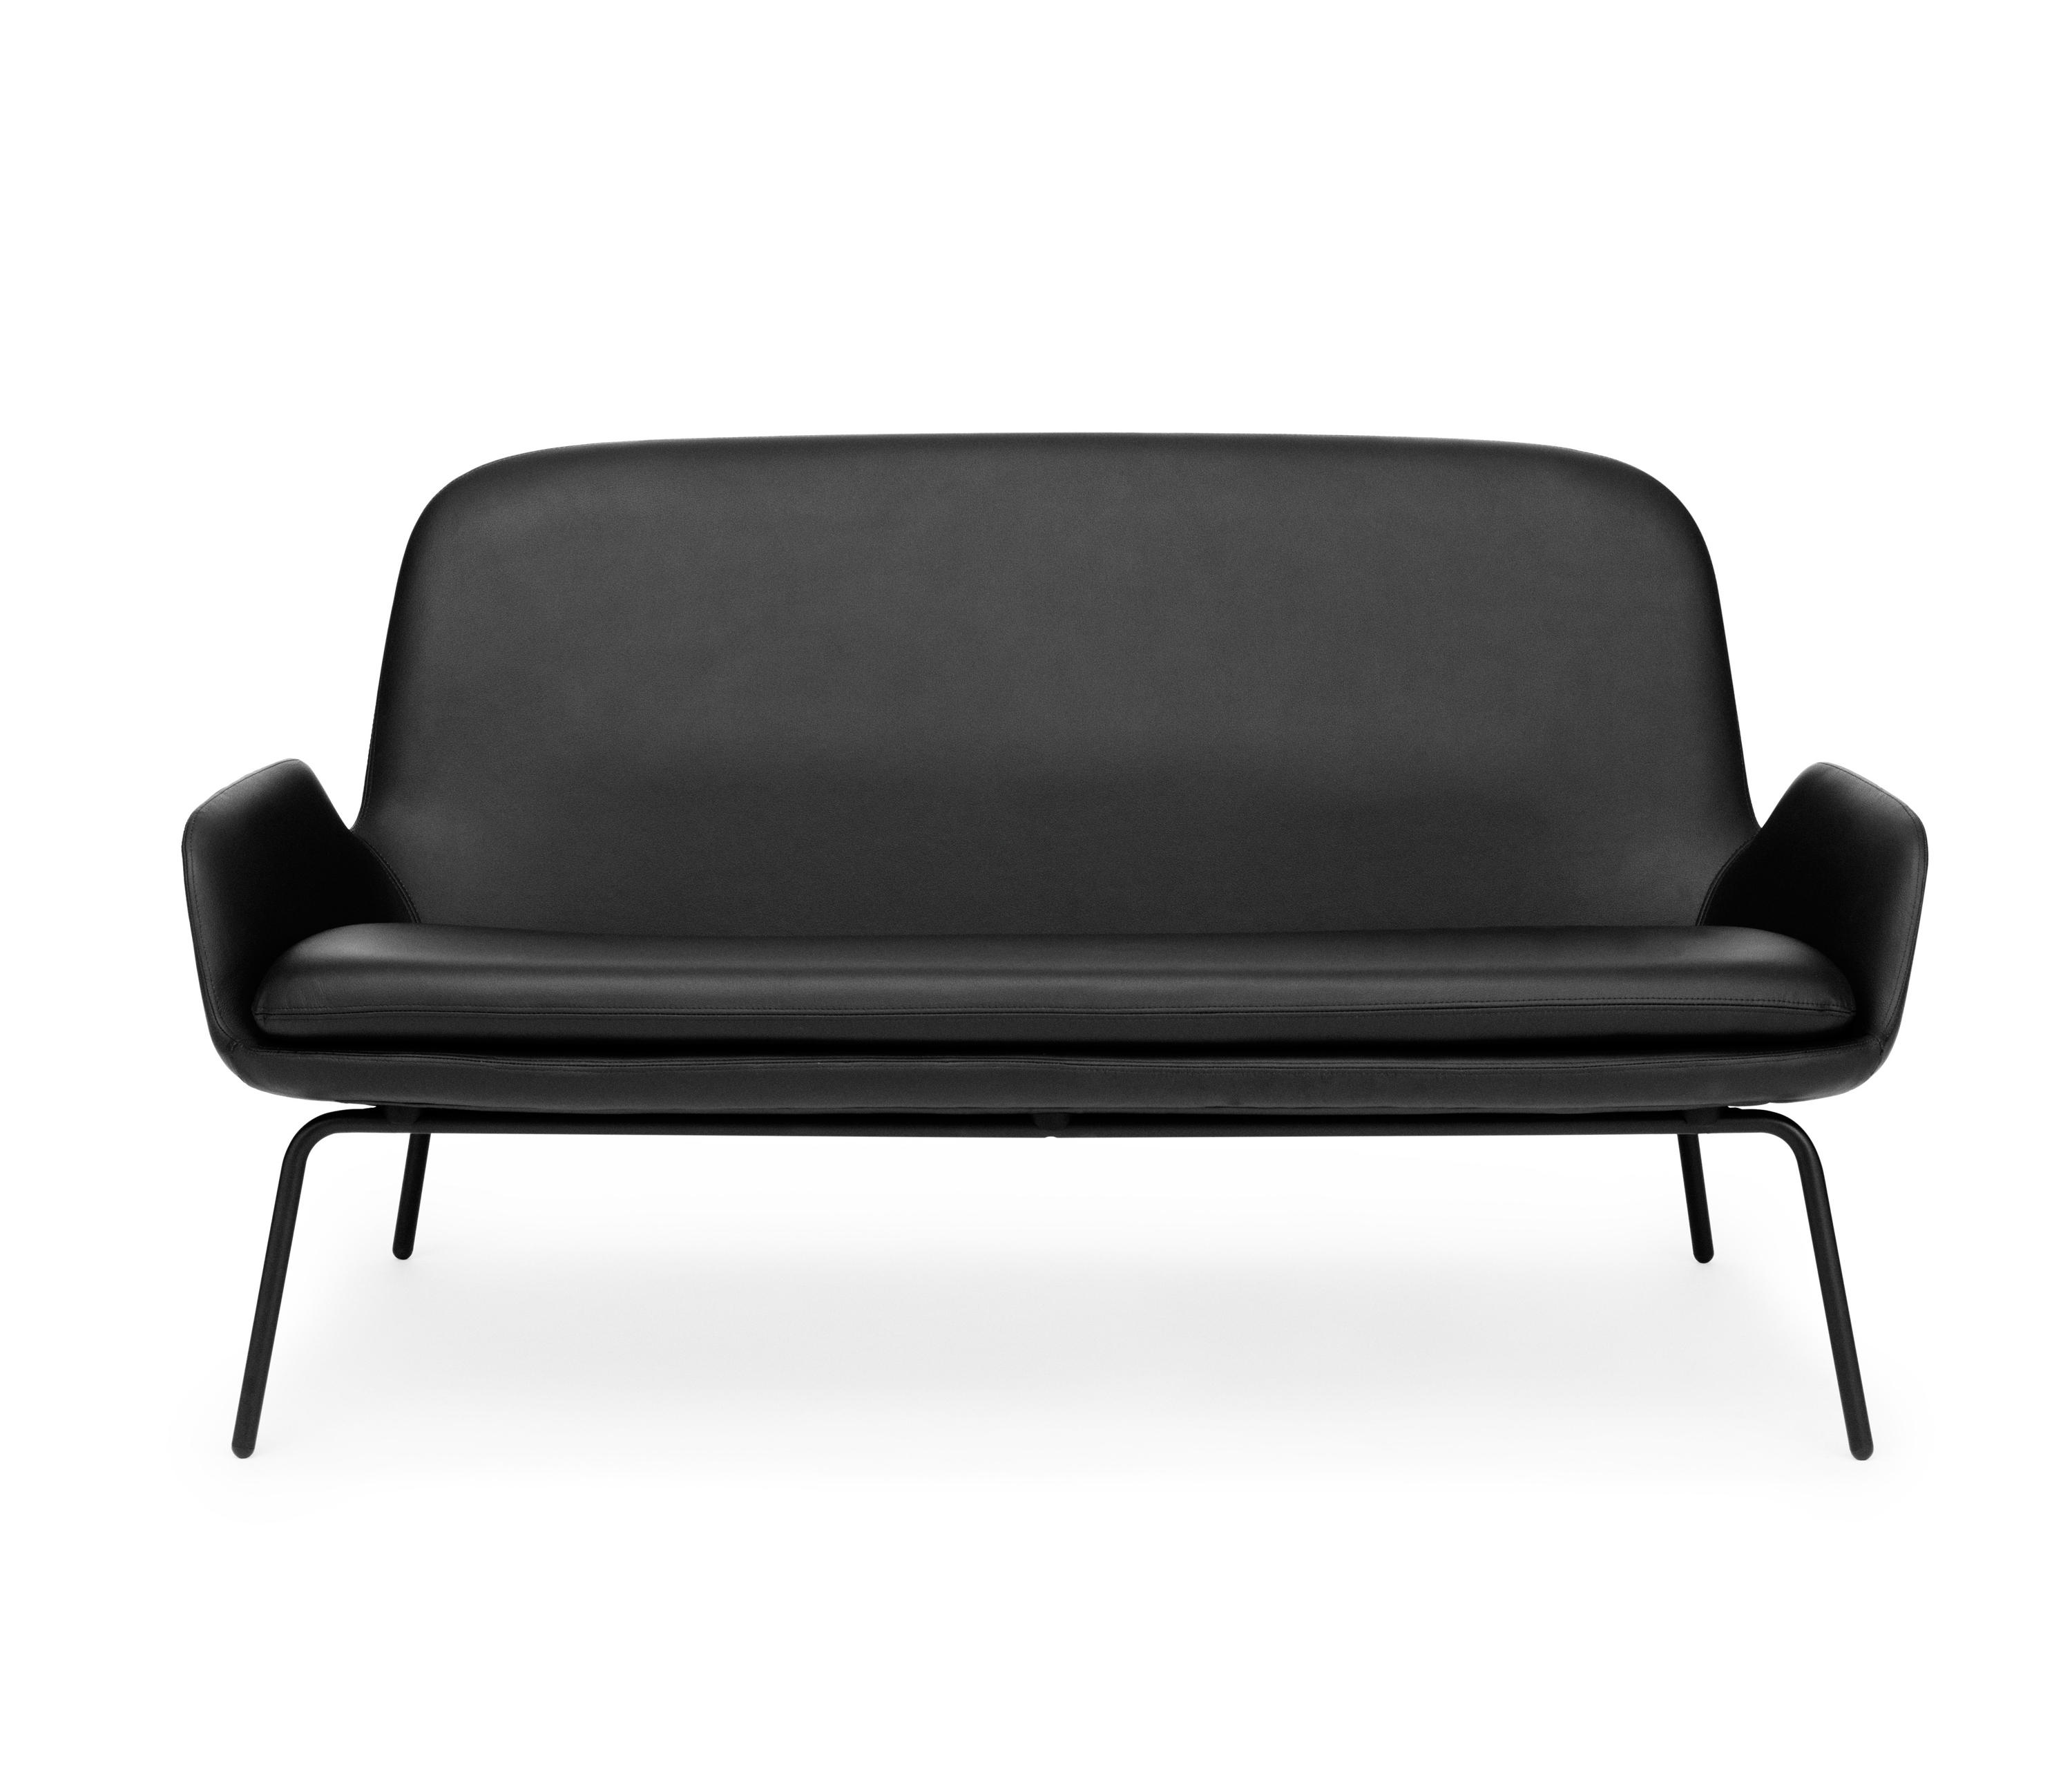 era sofa lounge sofas from normann copenhagen architonic. Black Bedroom Furniture Sets. Home Design Ideas